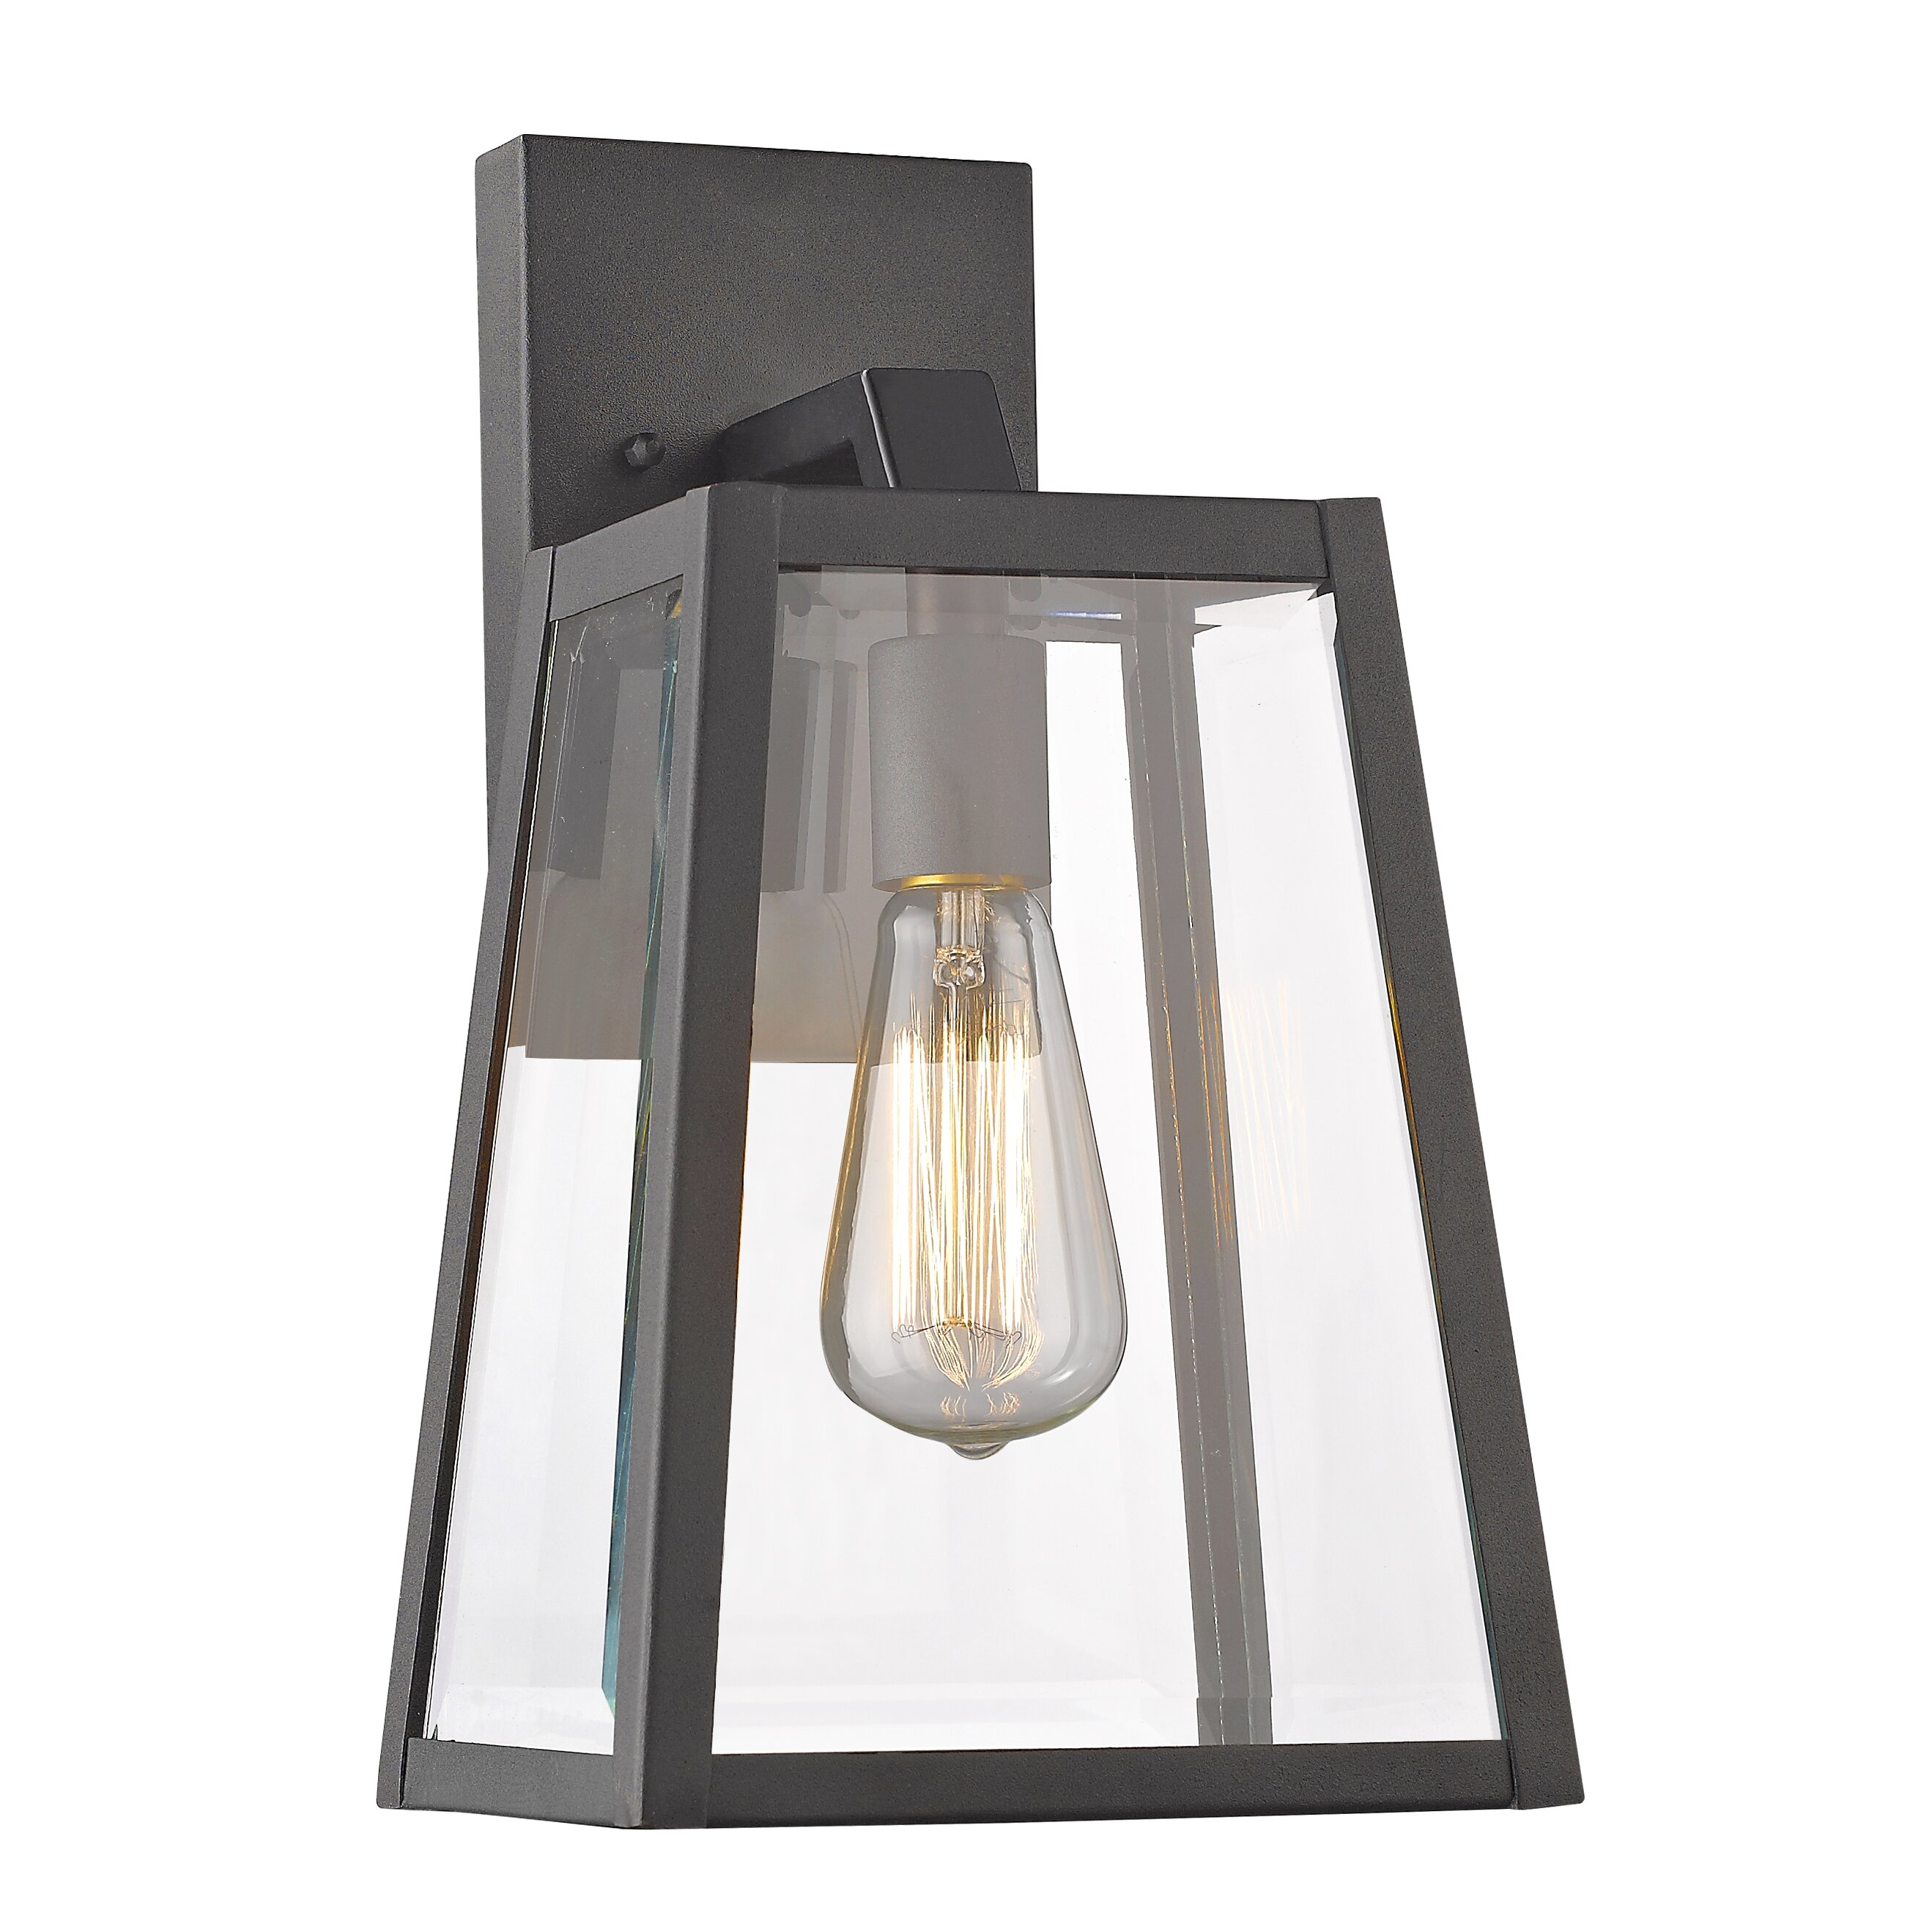 Wayfair External Wall Lights : Chloe Lighting 1 Light Outdoor Wall Lantern & Reviews Wayfair